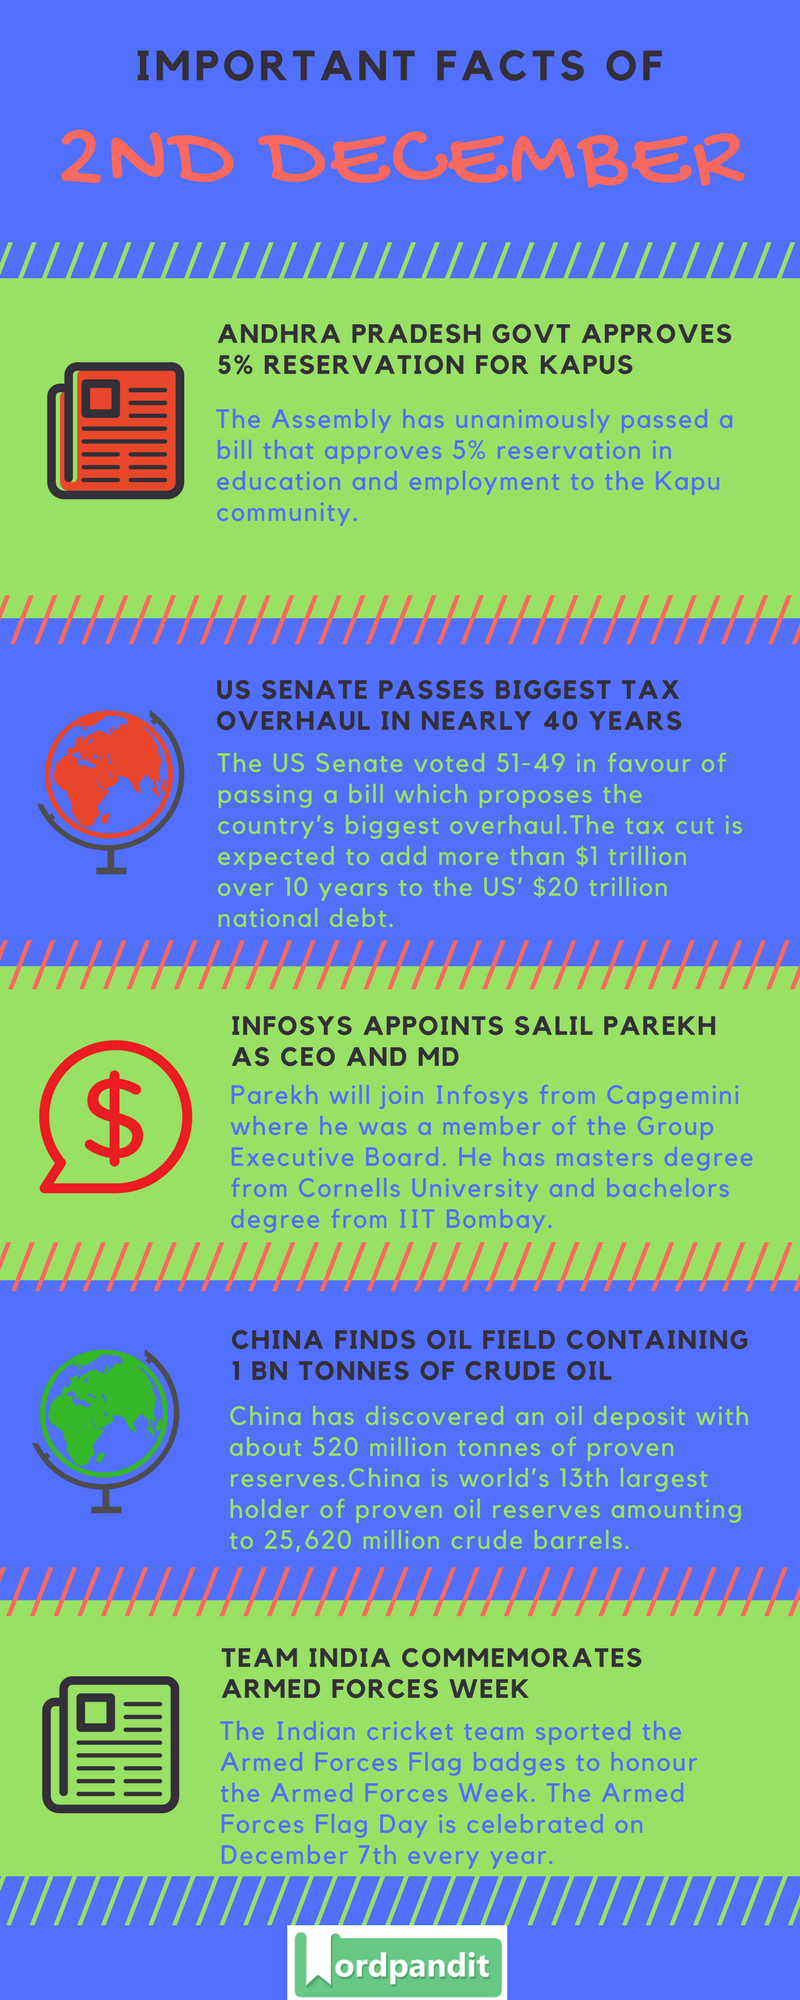 Daily-Current-Affairs-2-december-2017-Current-Affairs-Quiz-december-2-2017-Current-Affairs-Infographic